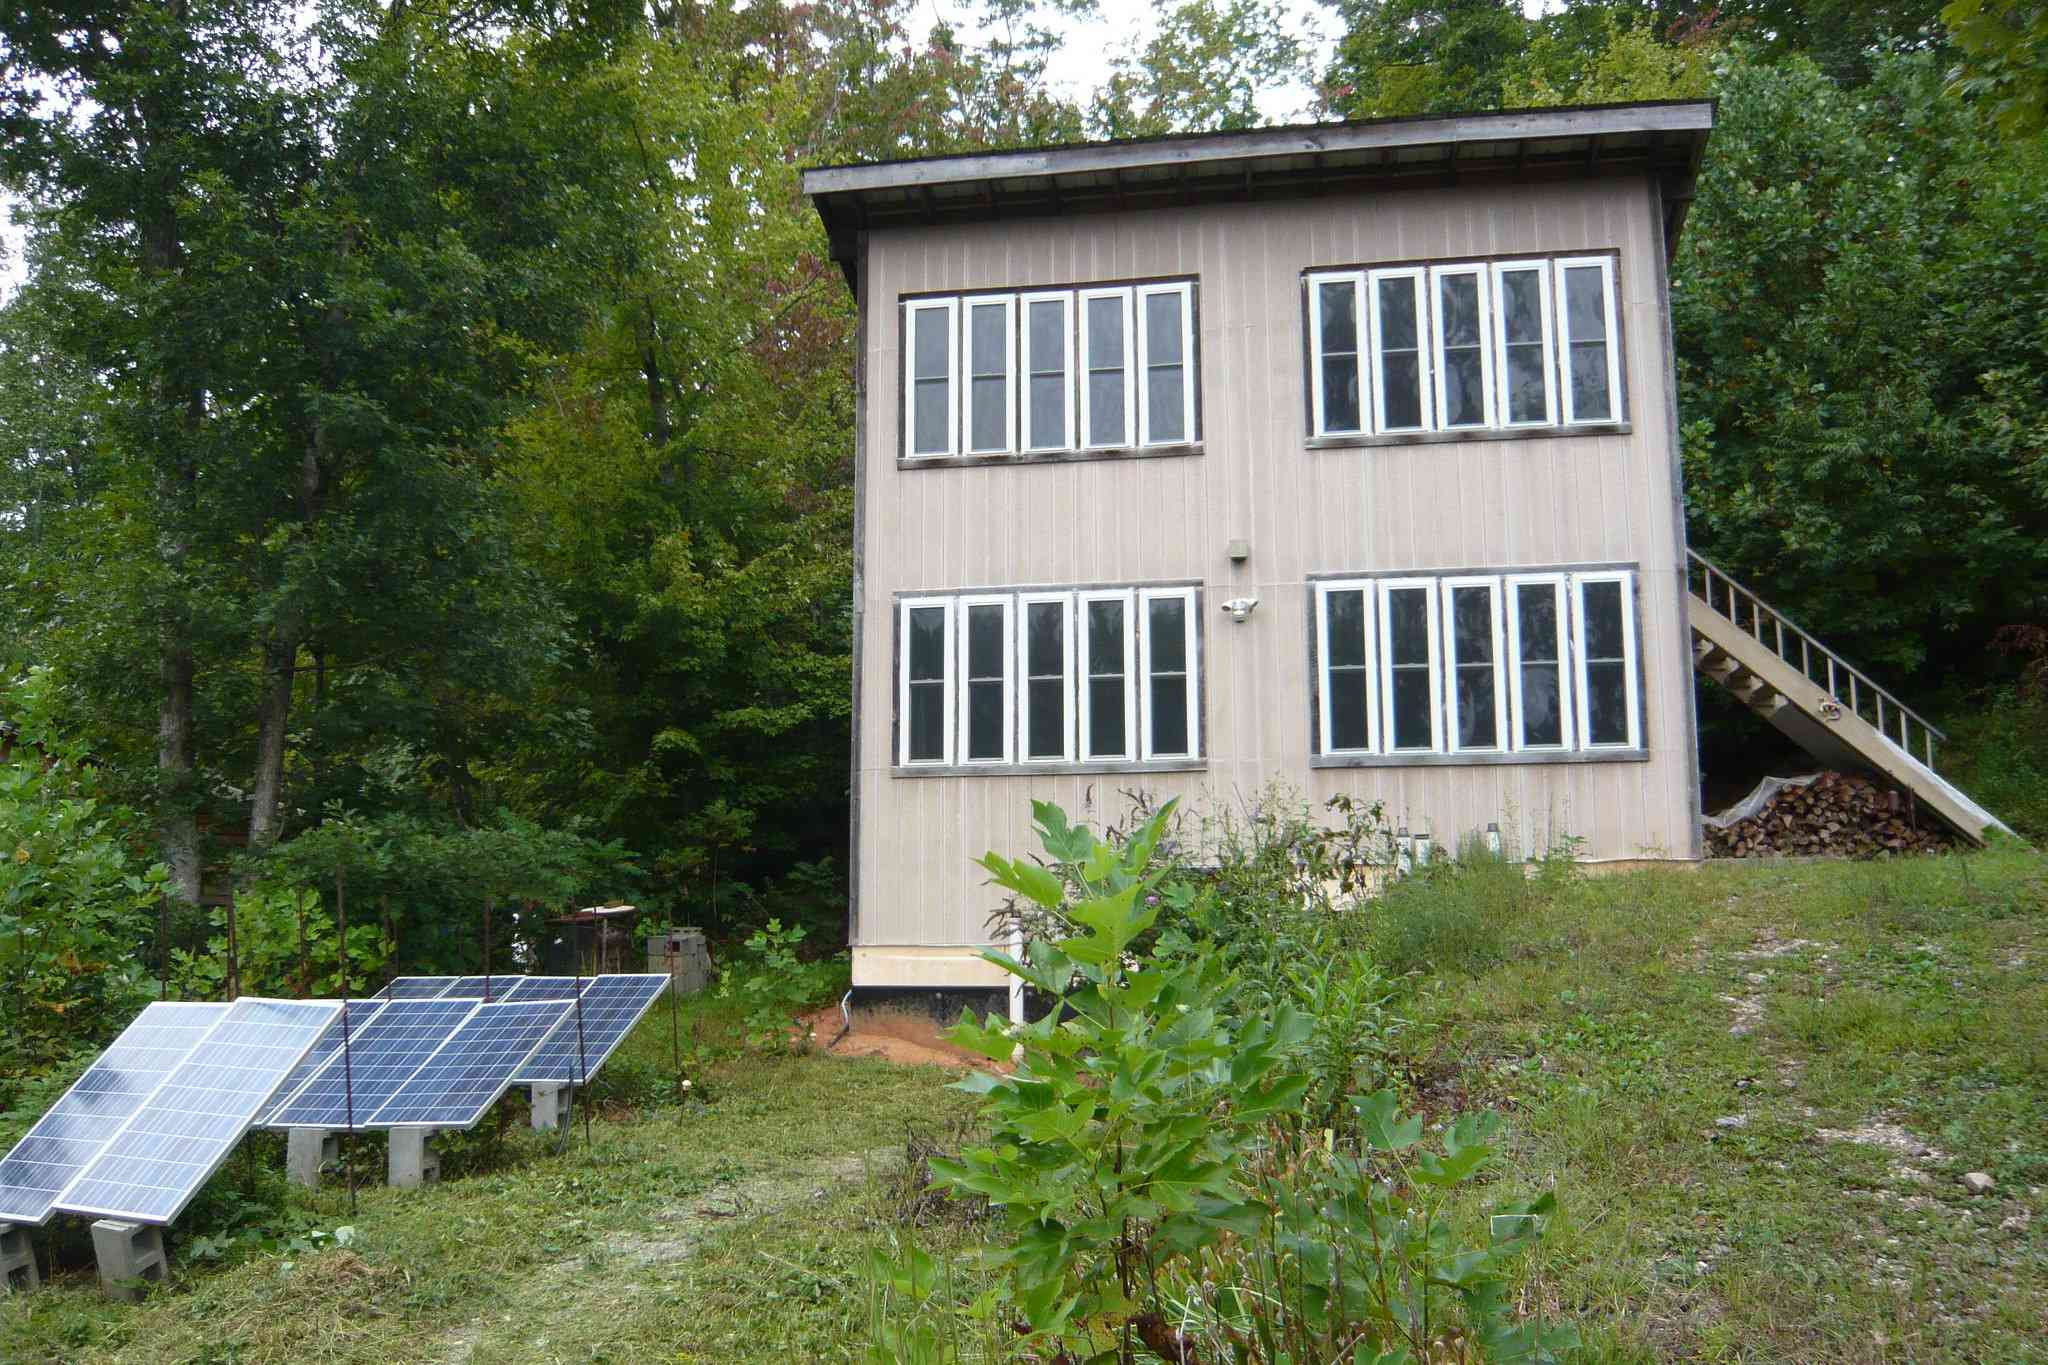 Solar dwelling at Earthaven